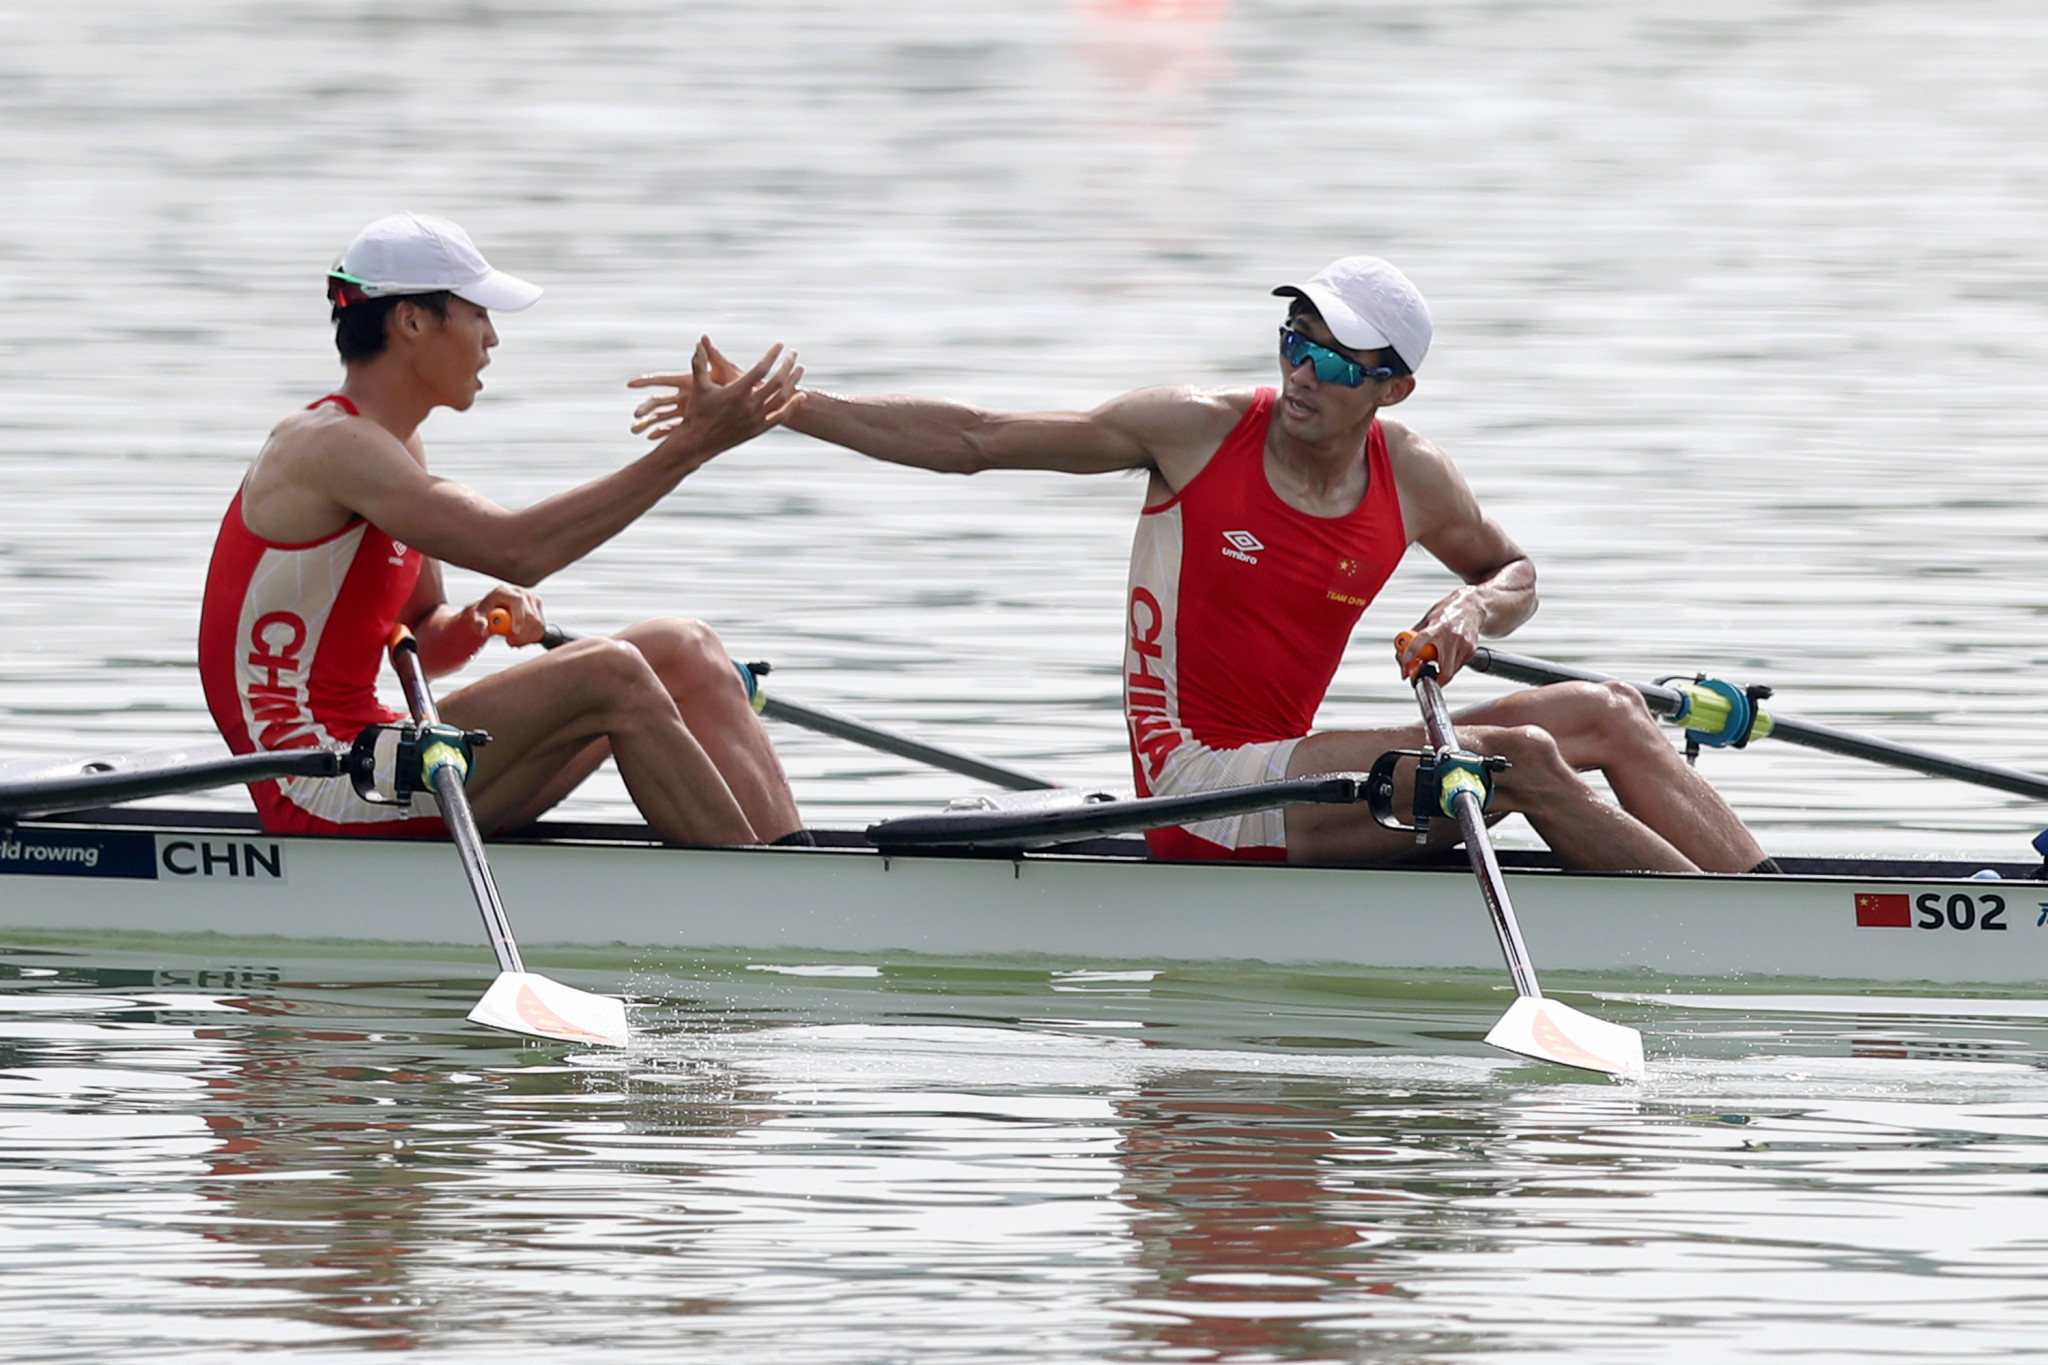 Lightweight rowing looks likely to be dropped from the Olympics ©Getty Images